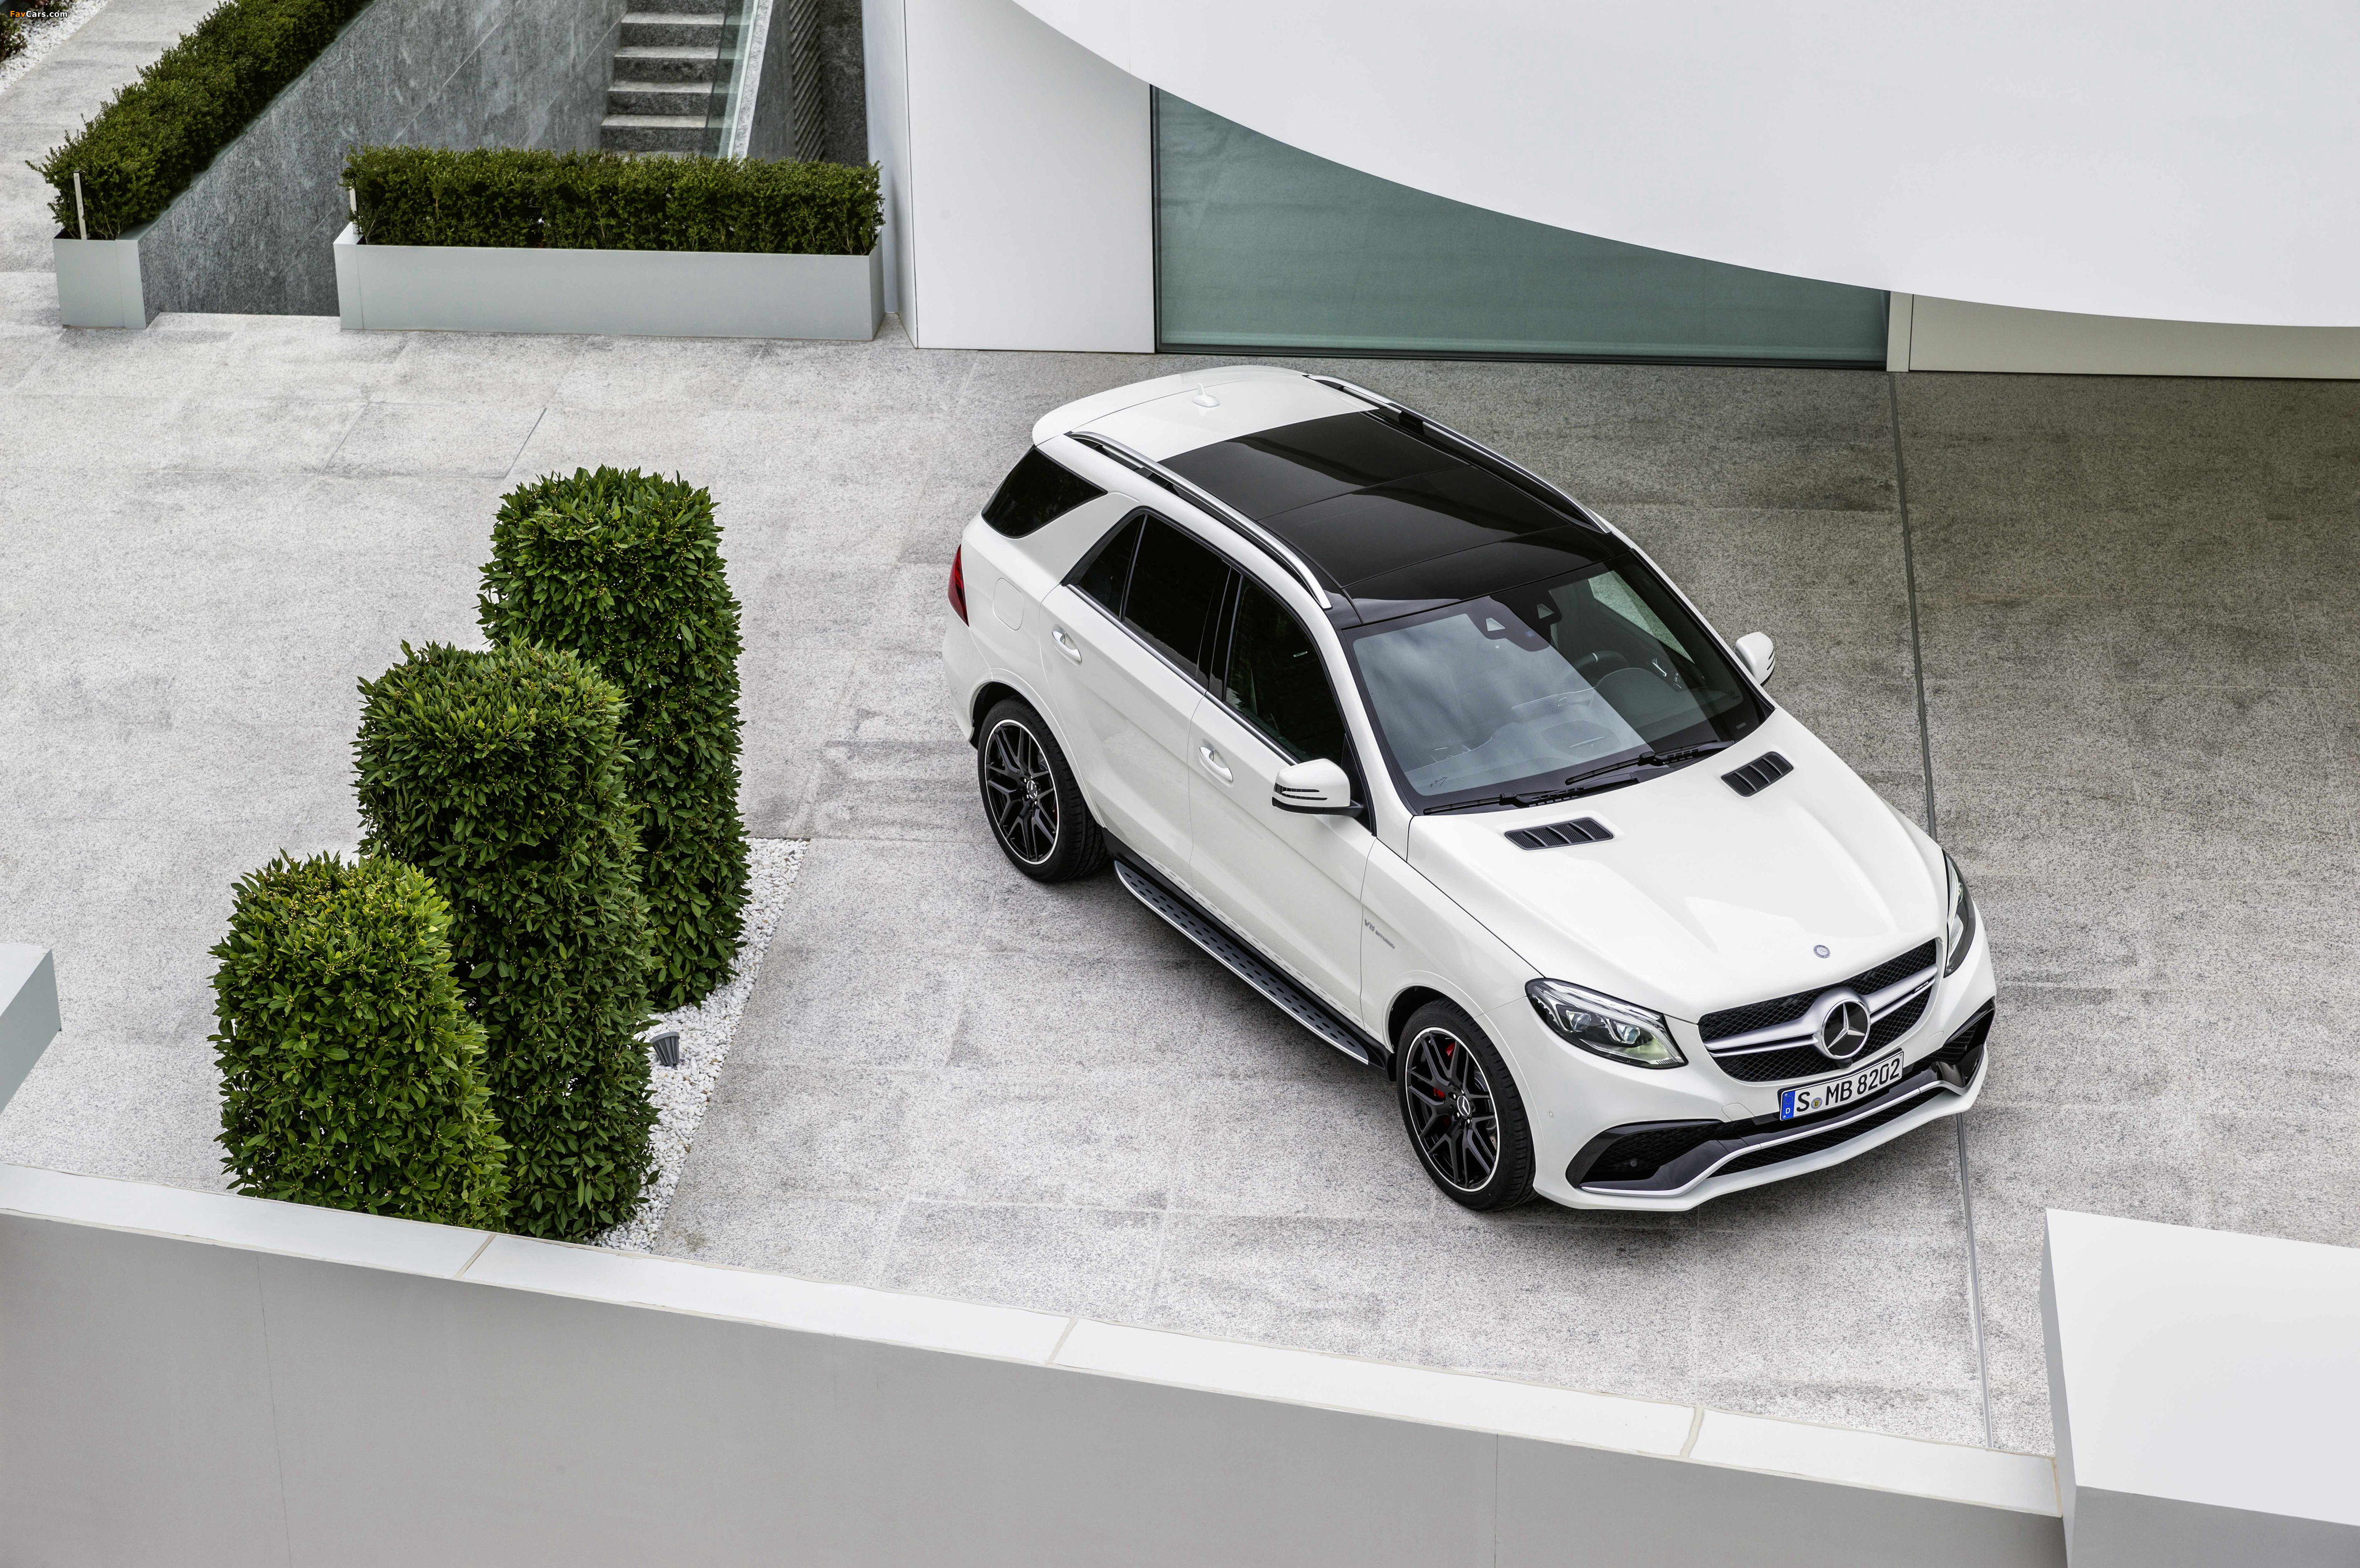 Mercedes-AMG GLE 63 S 4MATIC (W166) 2015 pictures (4096 x 2722)